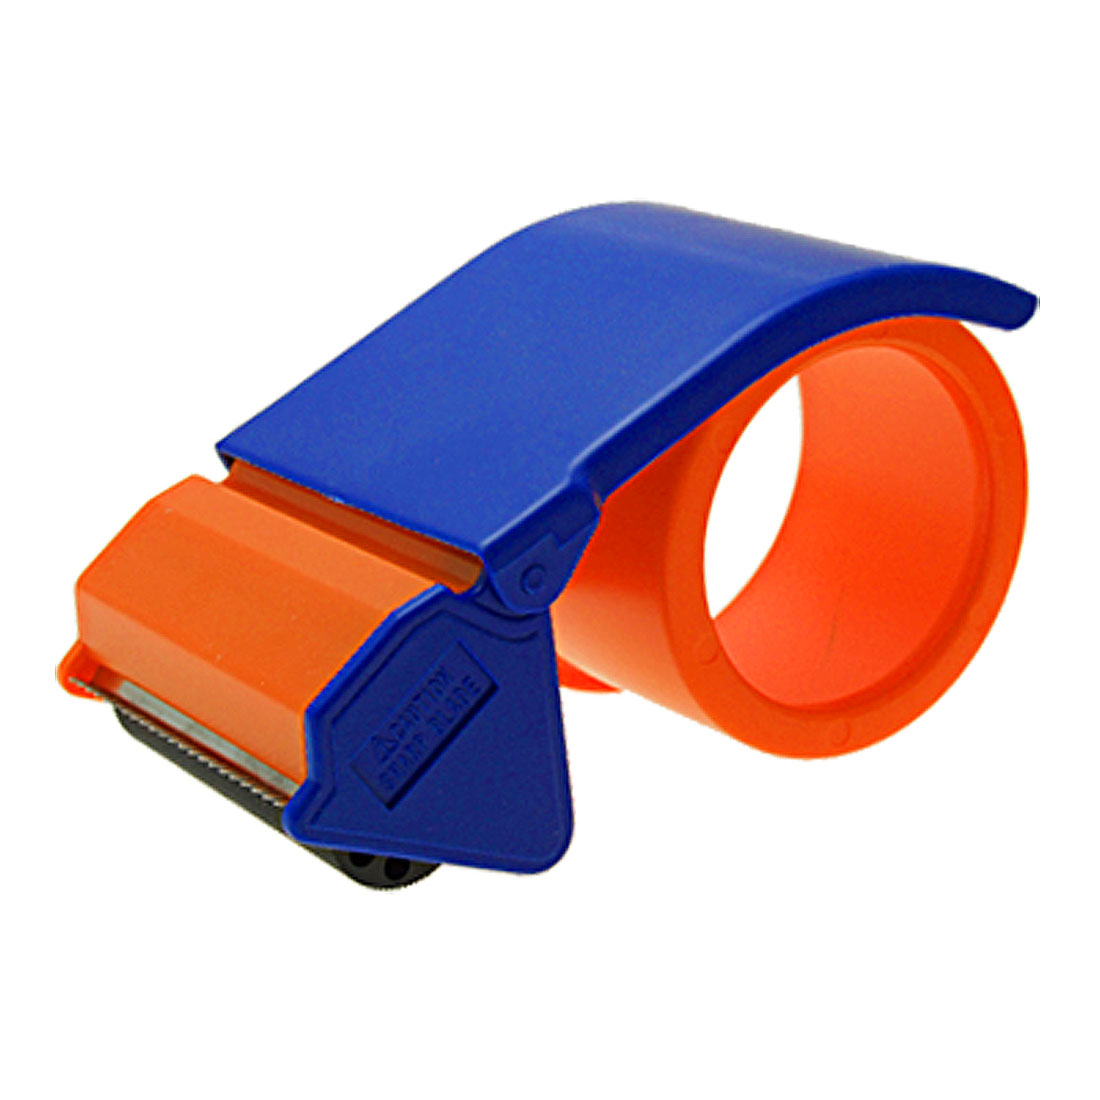 Sealing Packaging Hand Packing Adhesive Tape Cutter Plastic Gun Roll Dispenser